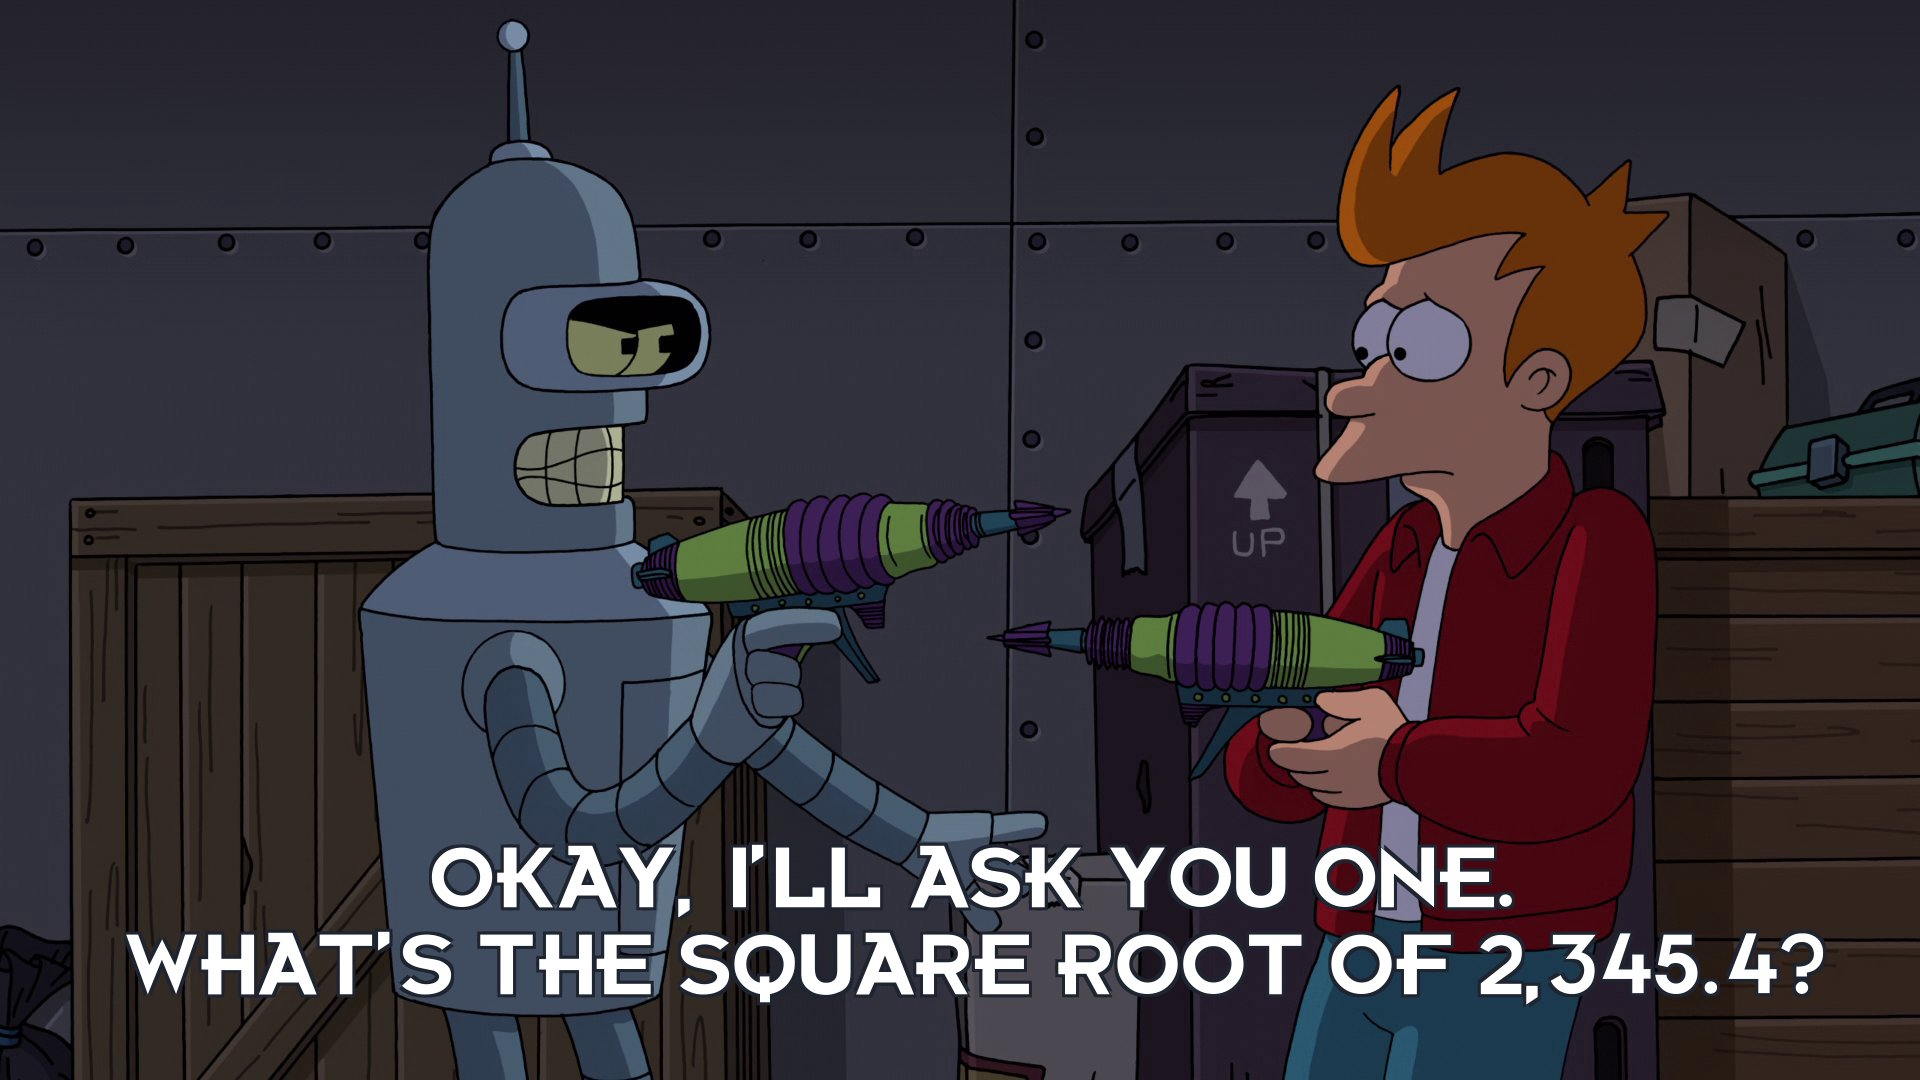 Bender Bending Rodriguez: Okay, I'll ask you one. What's the square root of 2,345.4?